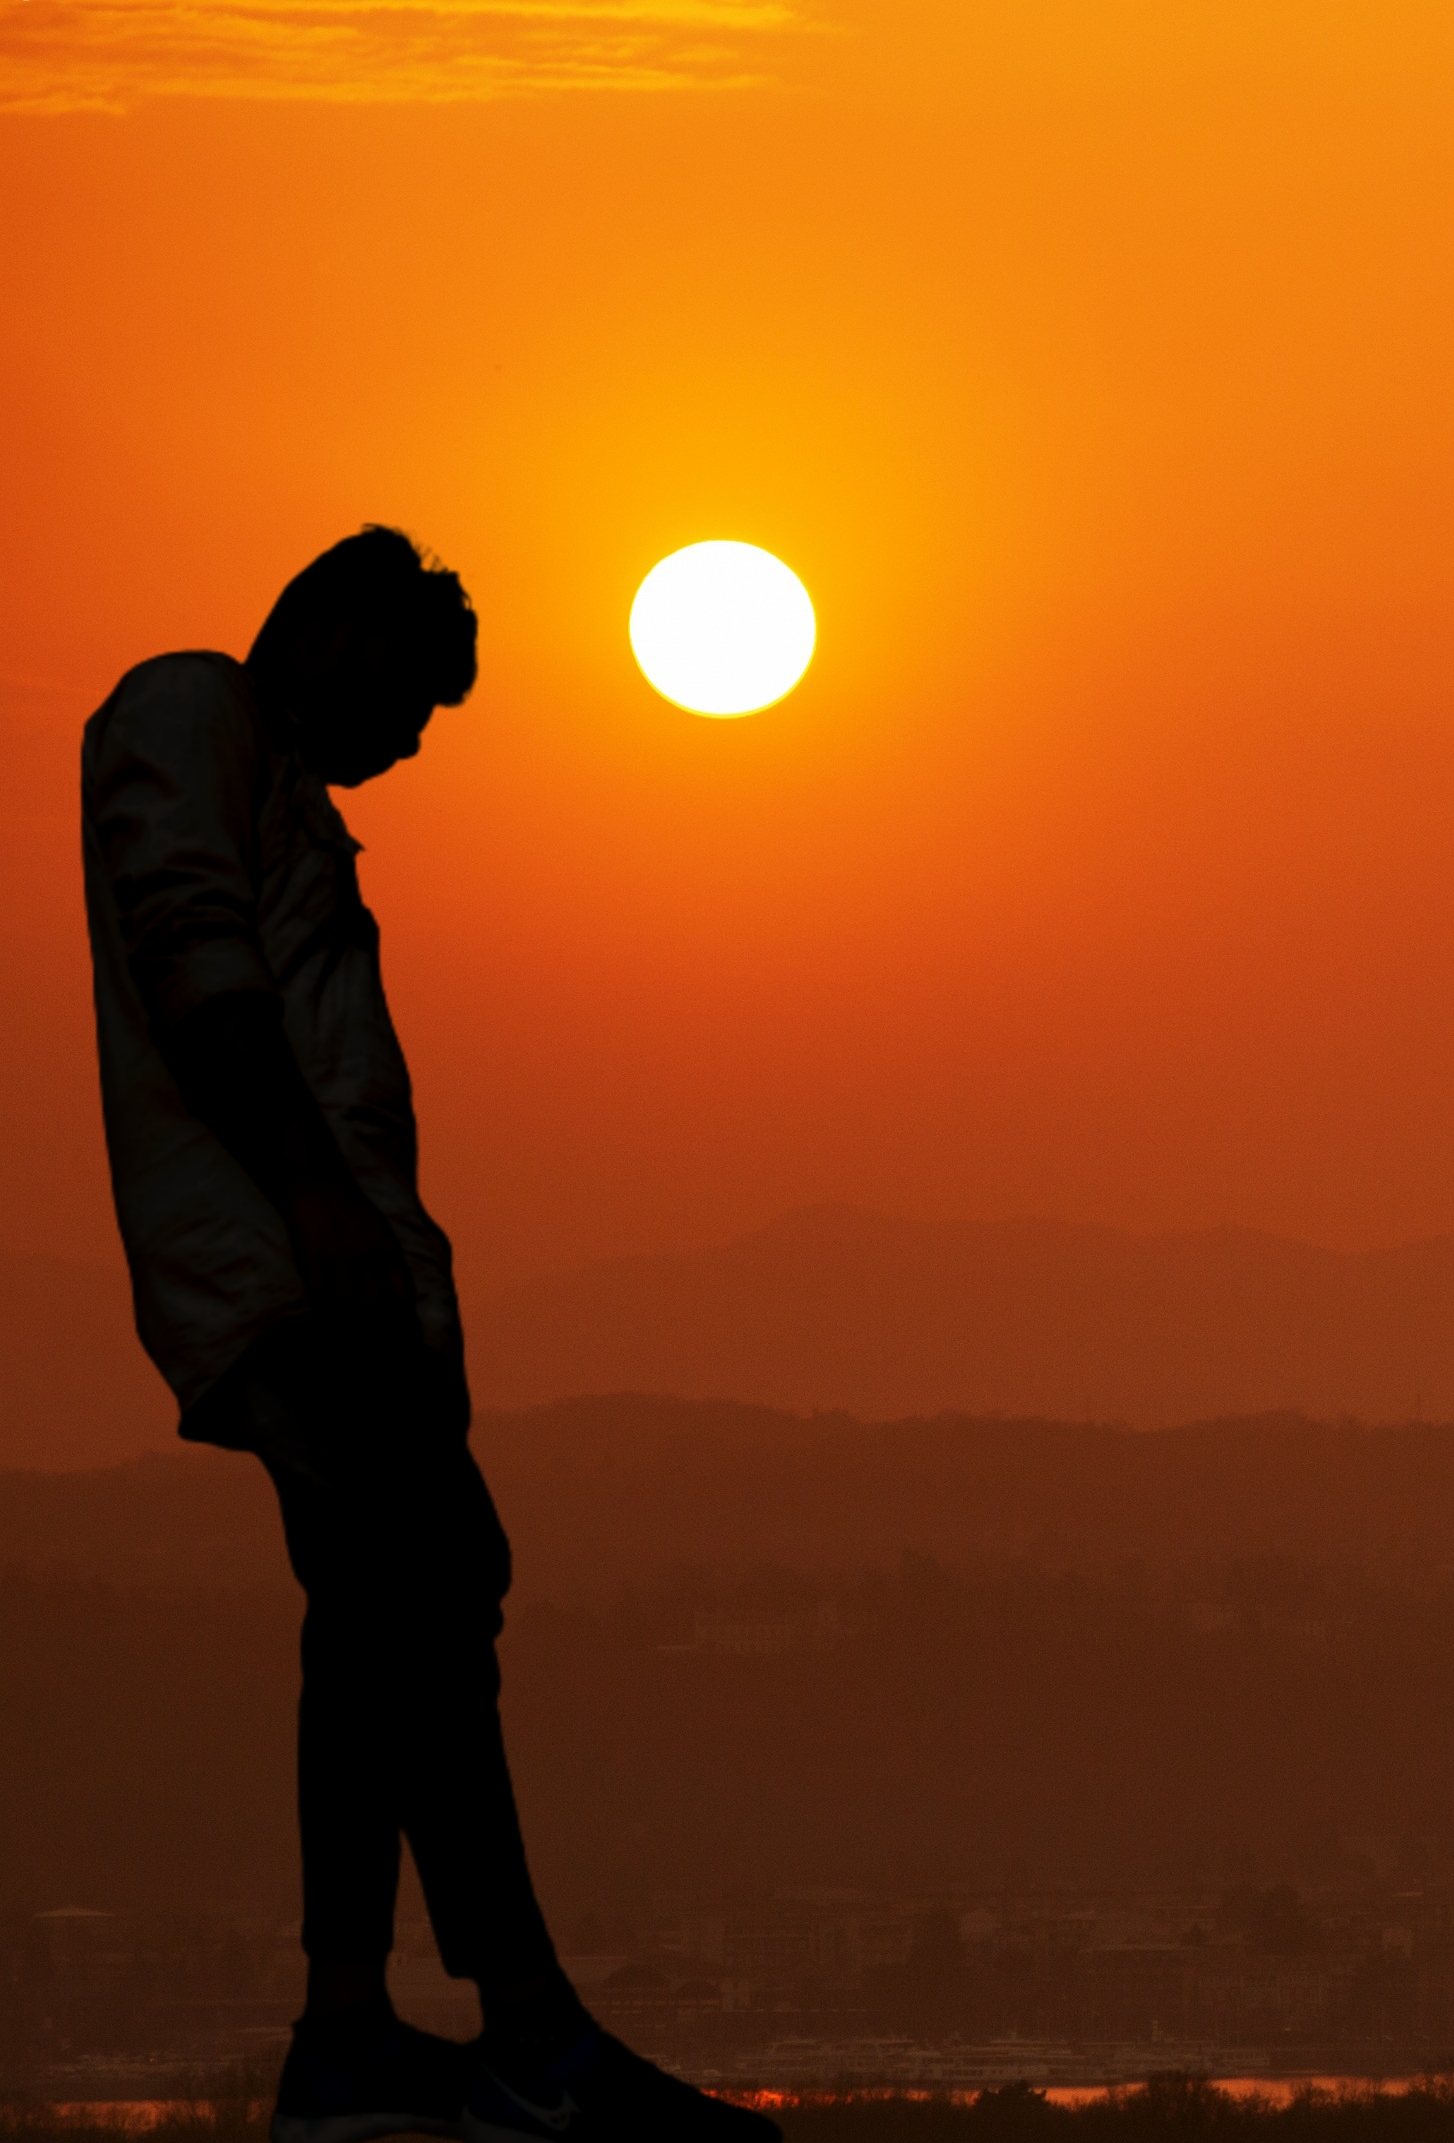 Boy standing under orange Sunlight